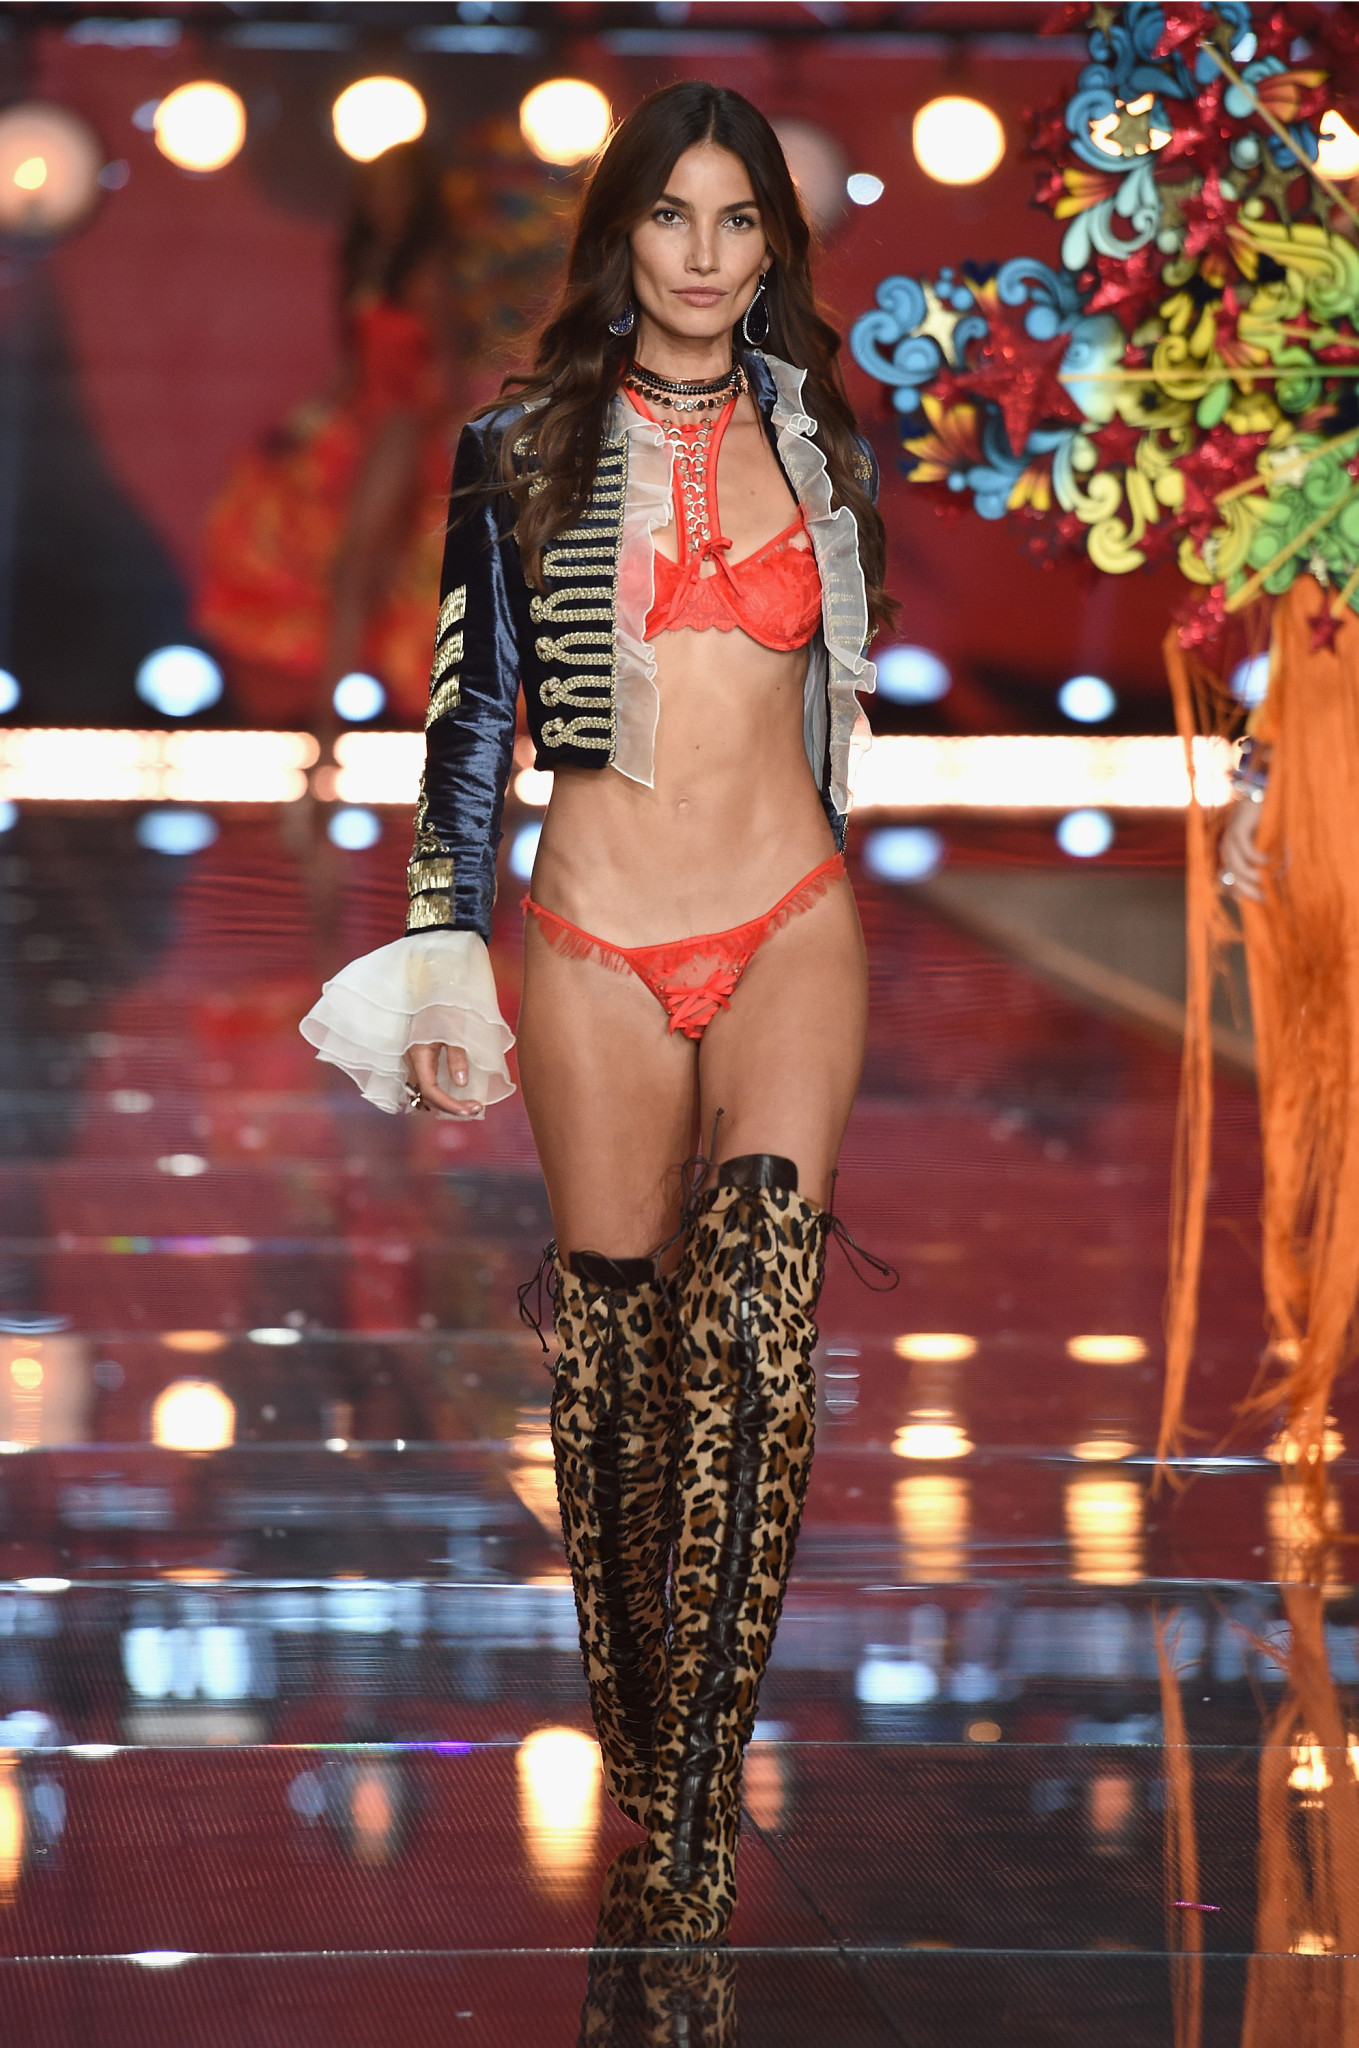 fashion-show-runway-2015-boho-psychadelic-lily-look-2-victorias-secret-hi-res